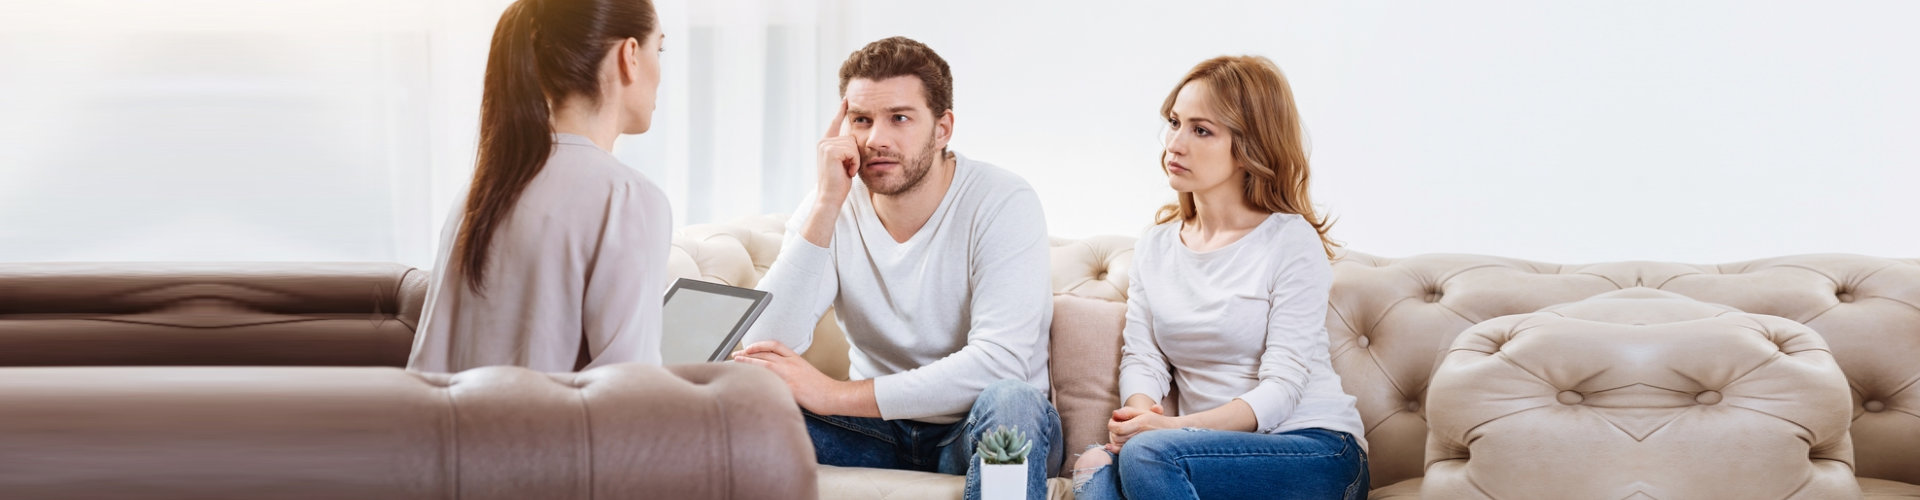 troubled couple listening closely to their therapist